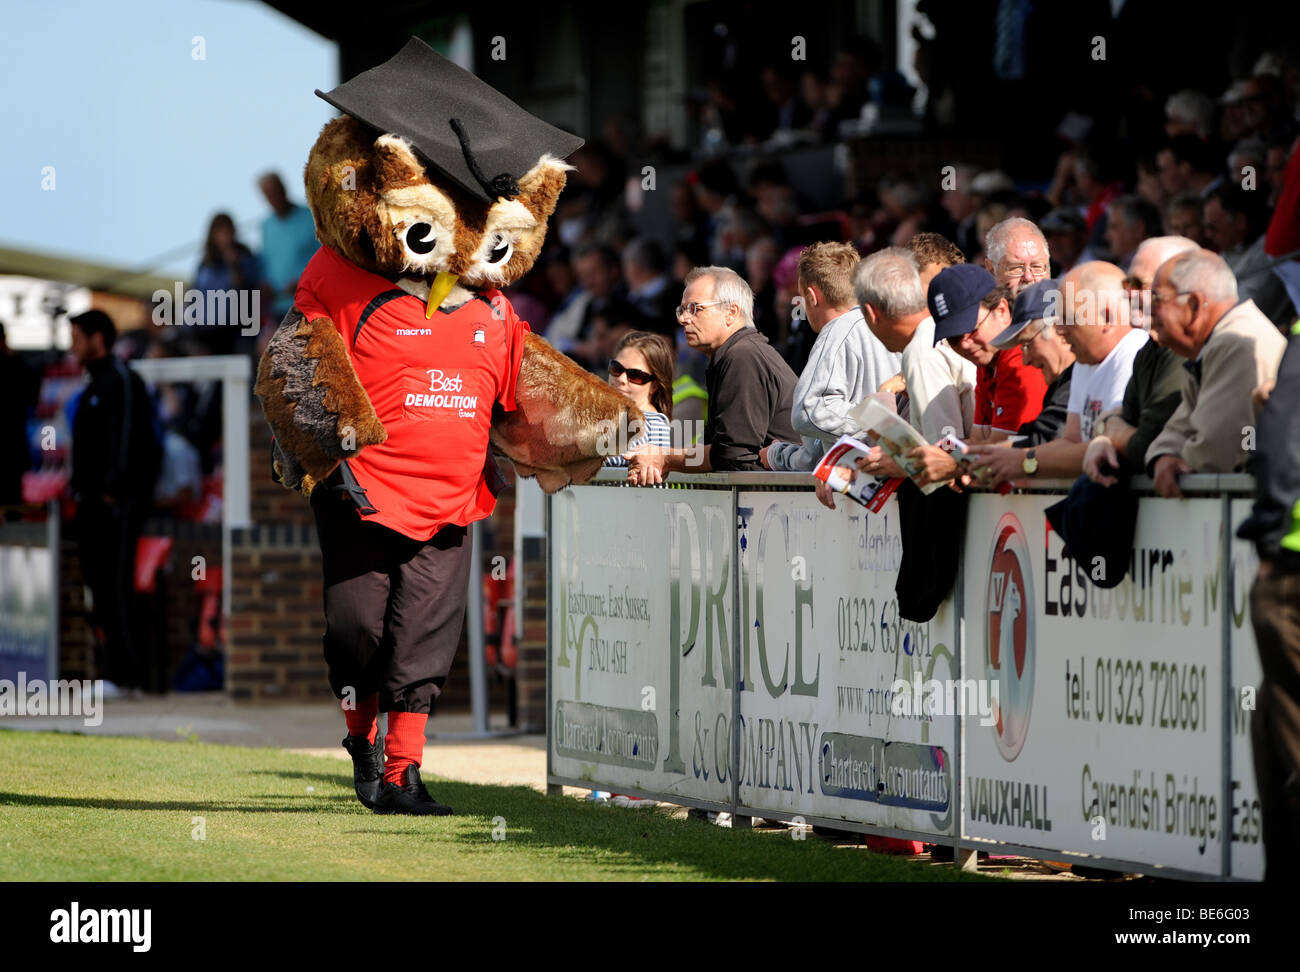 Ollie the owl football mascot at eastbourne borough entertains the fans before a match - Stock Image